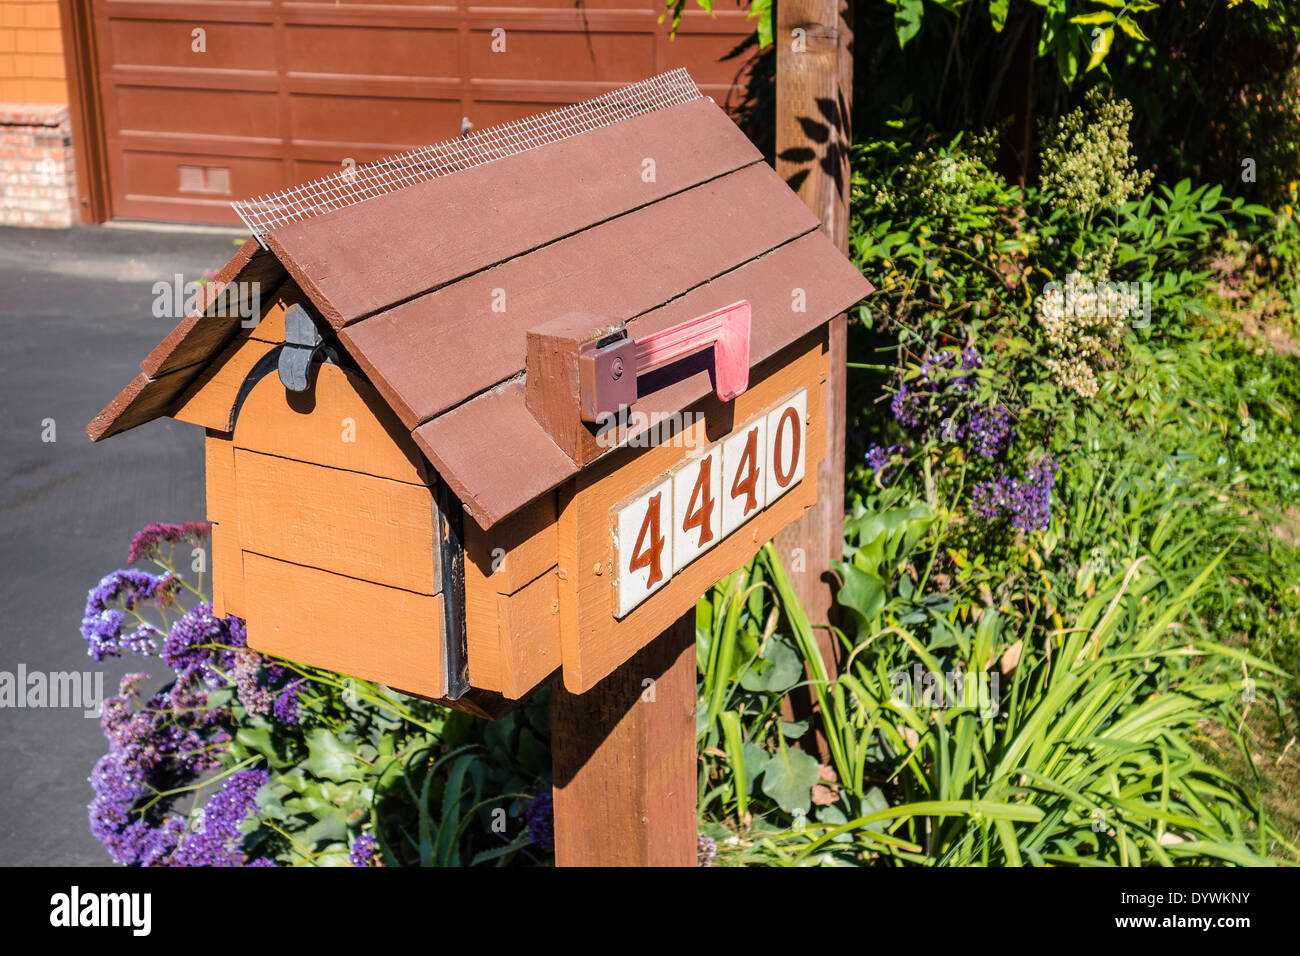 A house shaped wooden mailbox with bird deterrent on top and address on the side at a residence in Santa Barbara County, CA, USA - Stock Image